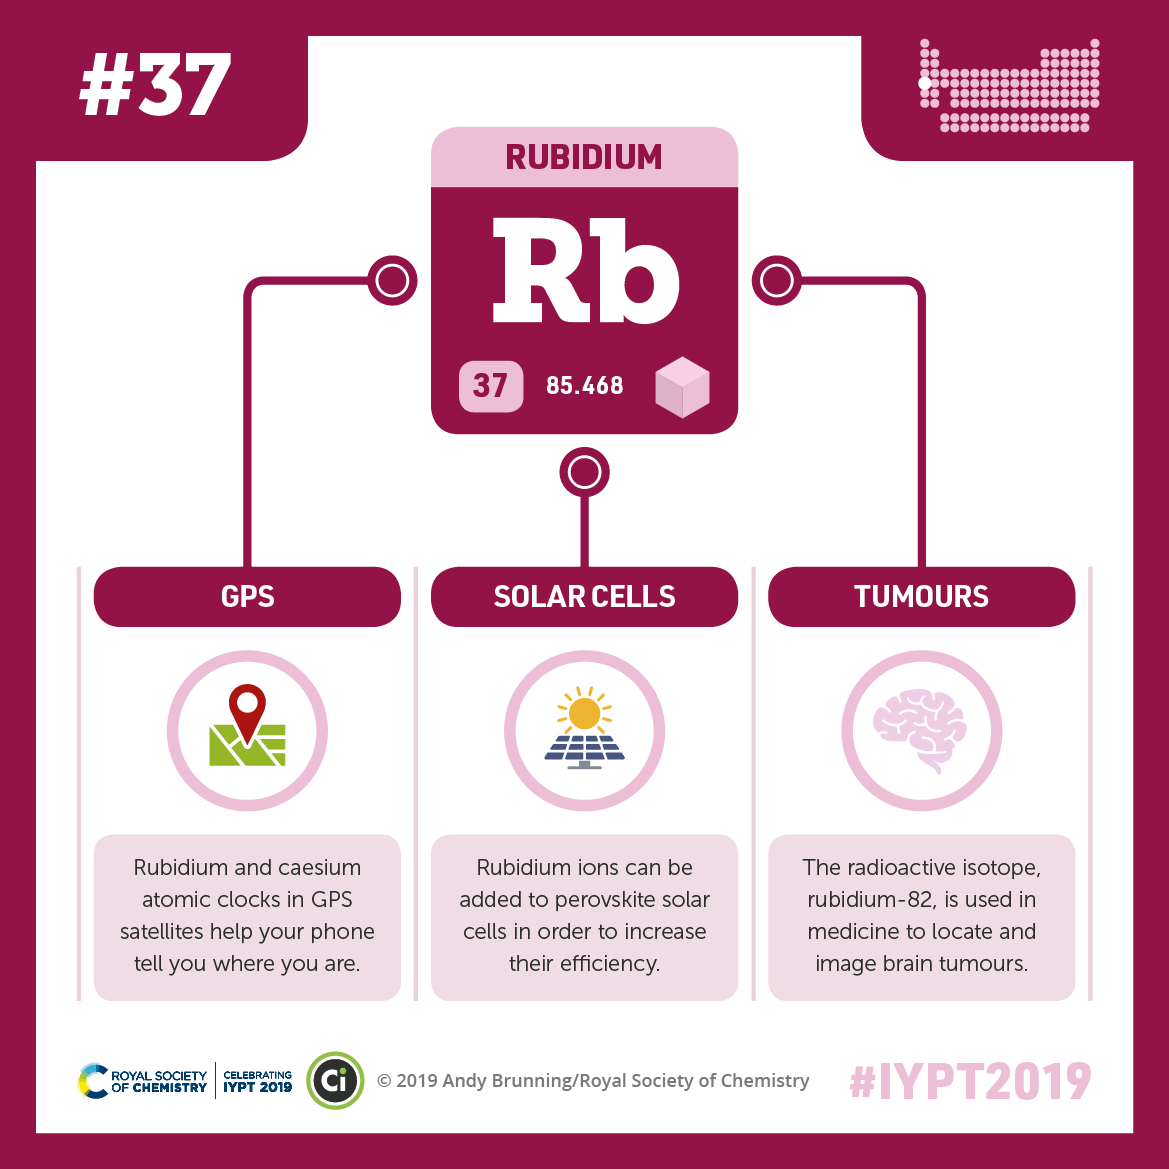 IYPT 2019 Elements 037: Rubidium: GPS, solar cells, and locating tumours